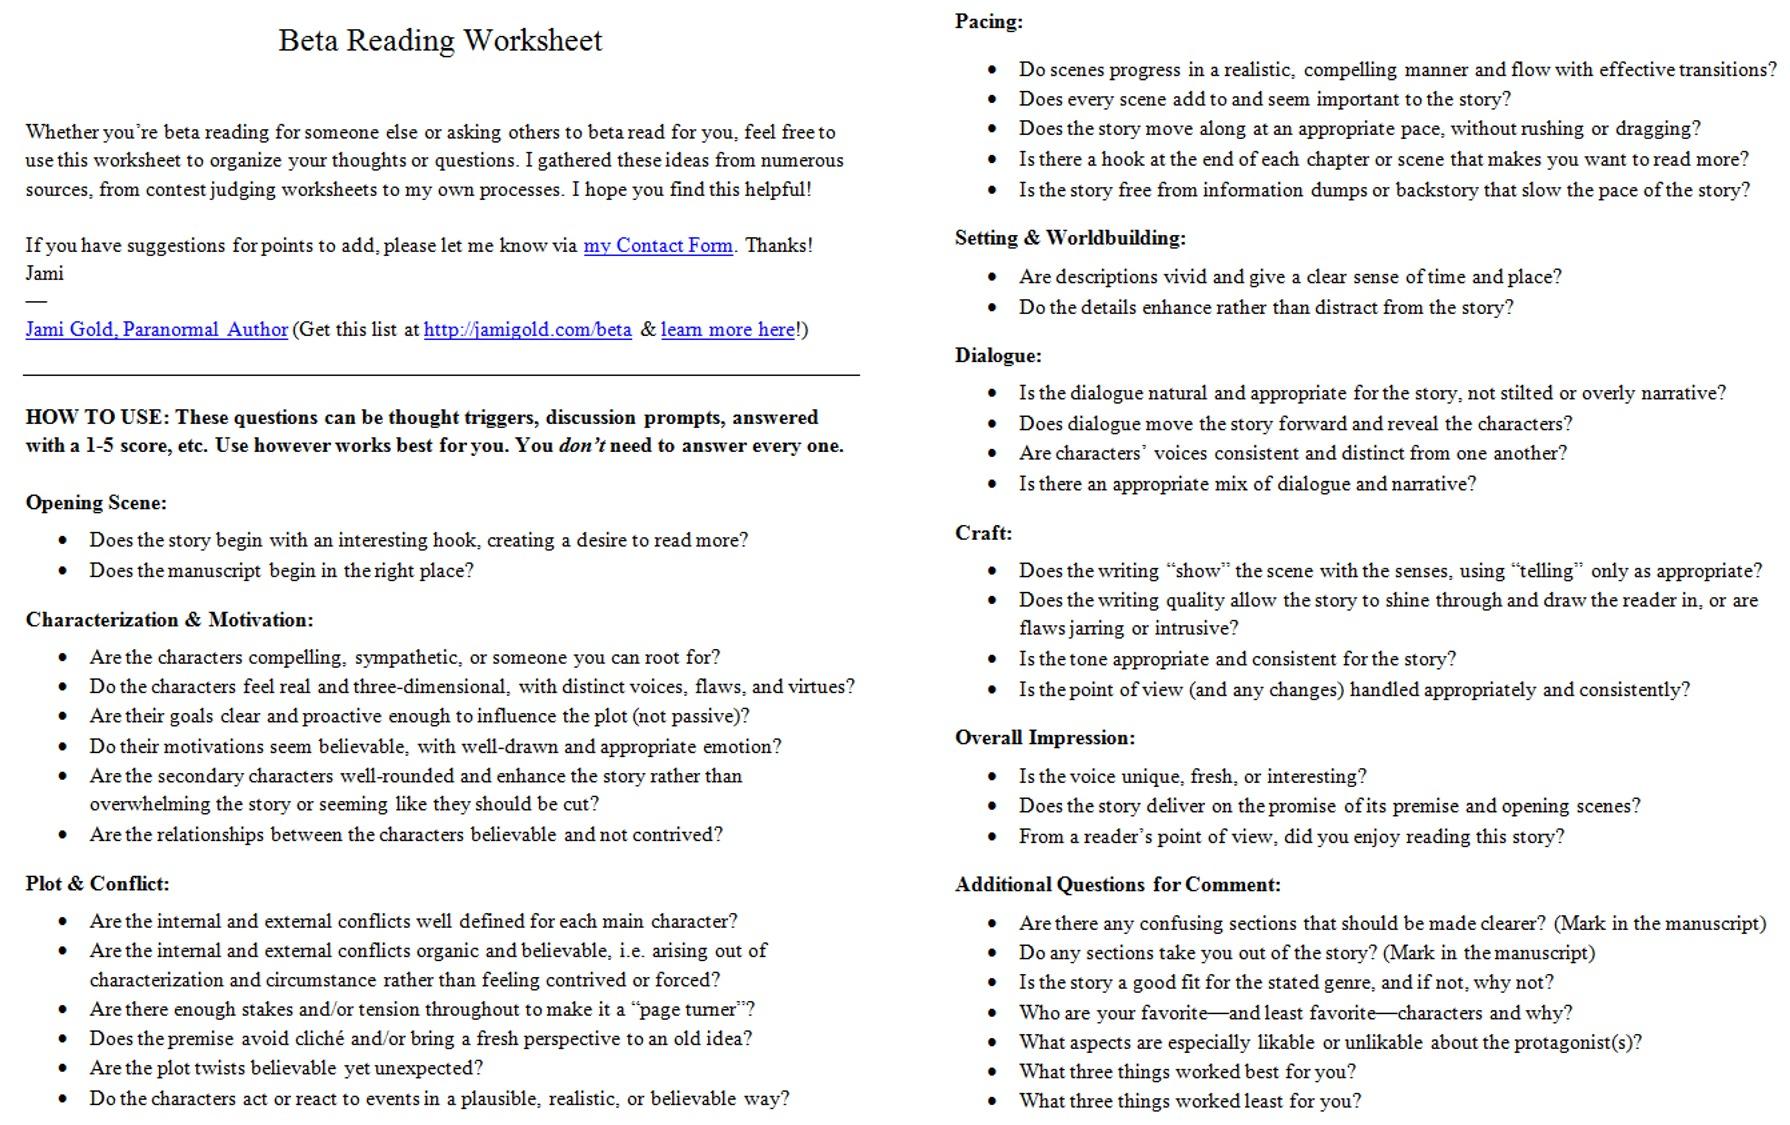 Aldiablosus  Pleasing Worksheets For Writers  Jami Gold Paranormal Author With Luxury Screen Shot Of The Twopage Beta Reading Worksheet With Charming Ch And Sh Worksheets Also Missing Letter Worksheet In Addition Fraction Into Decimal Worksheet And Declarative Sentence Worksheets As Well As Math Minutes Worksheets Additionally Tax Insolvency Worksheet From Jamigoldcom With Aldiablosus  Luxury Worksheets For Writers  Jami Gold Paranormal Author With Charming Screen Shot Of The Twopage Beta Reading Worksheet And Pleasing Ch And Sh Worksheets Also Missing Letter Worksheet In Addition Fraction Into Decimal Worksheet From Jamigoldcom